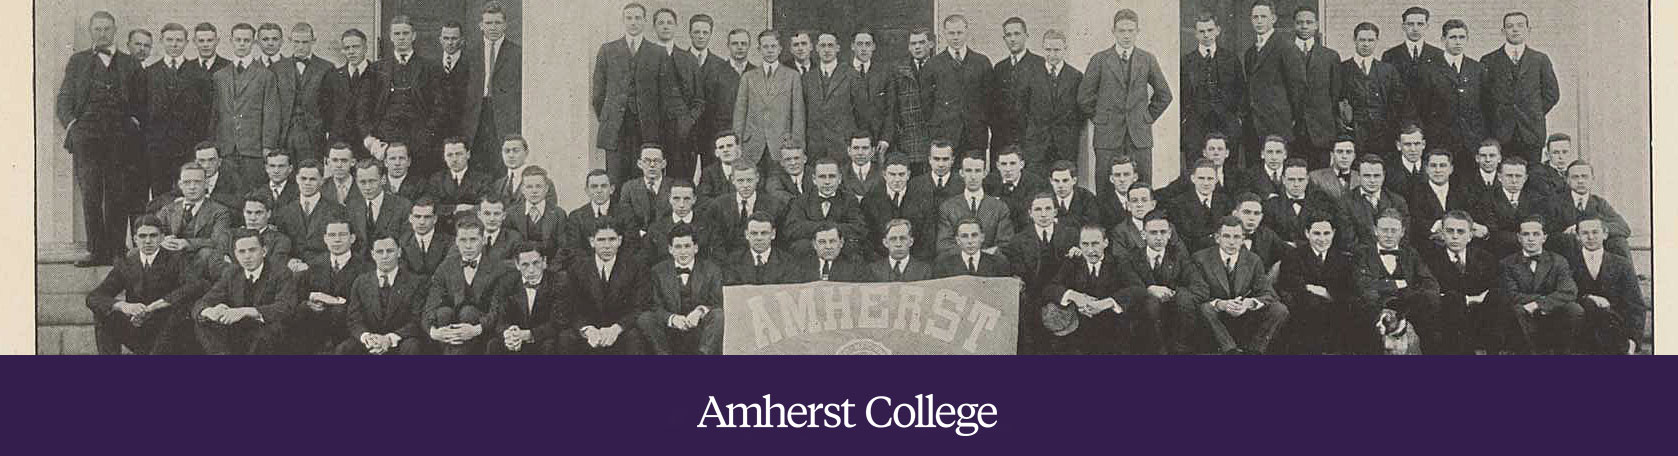 black and white image of the amherst class of 1815